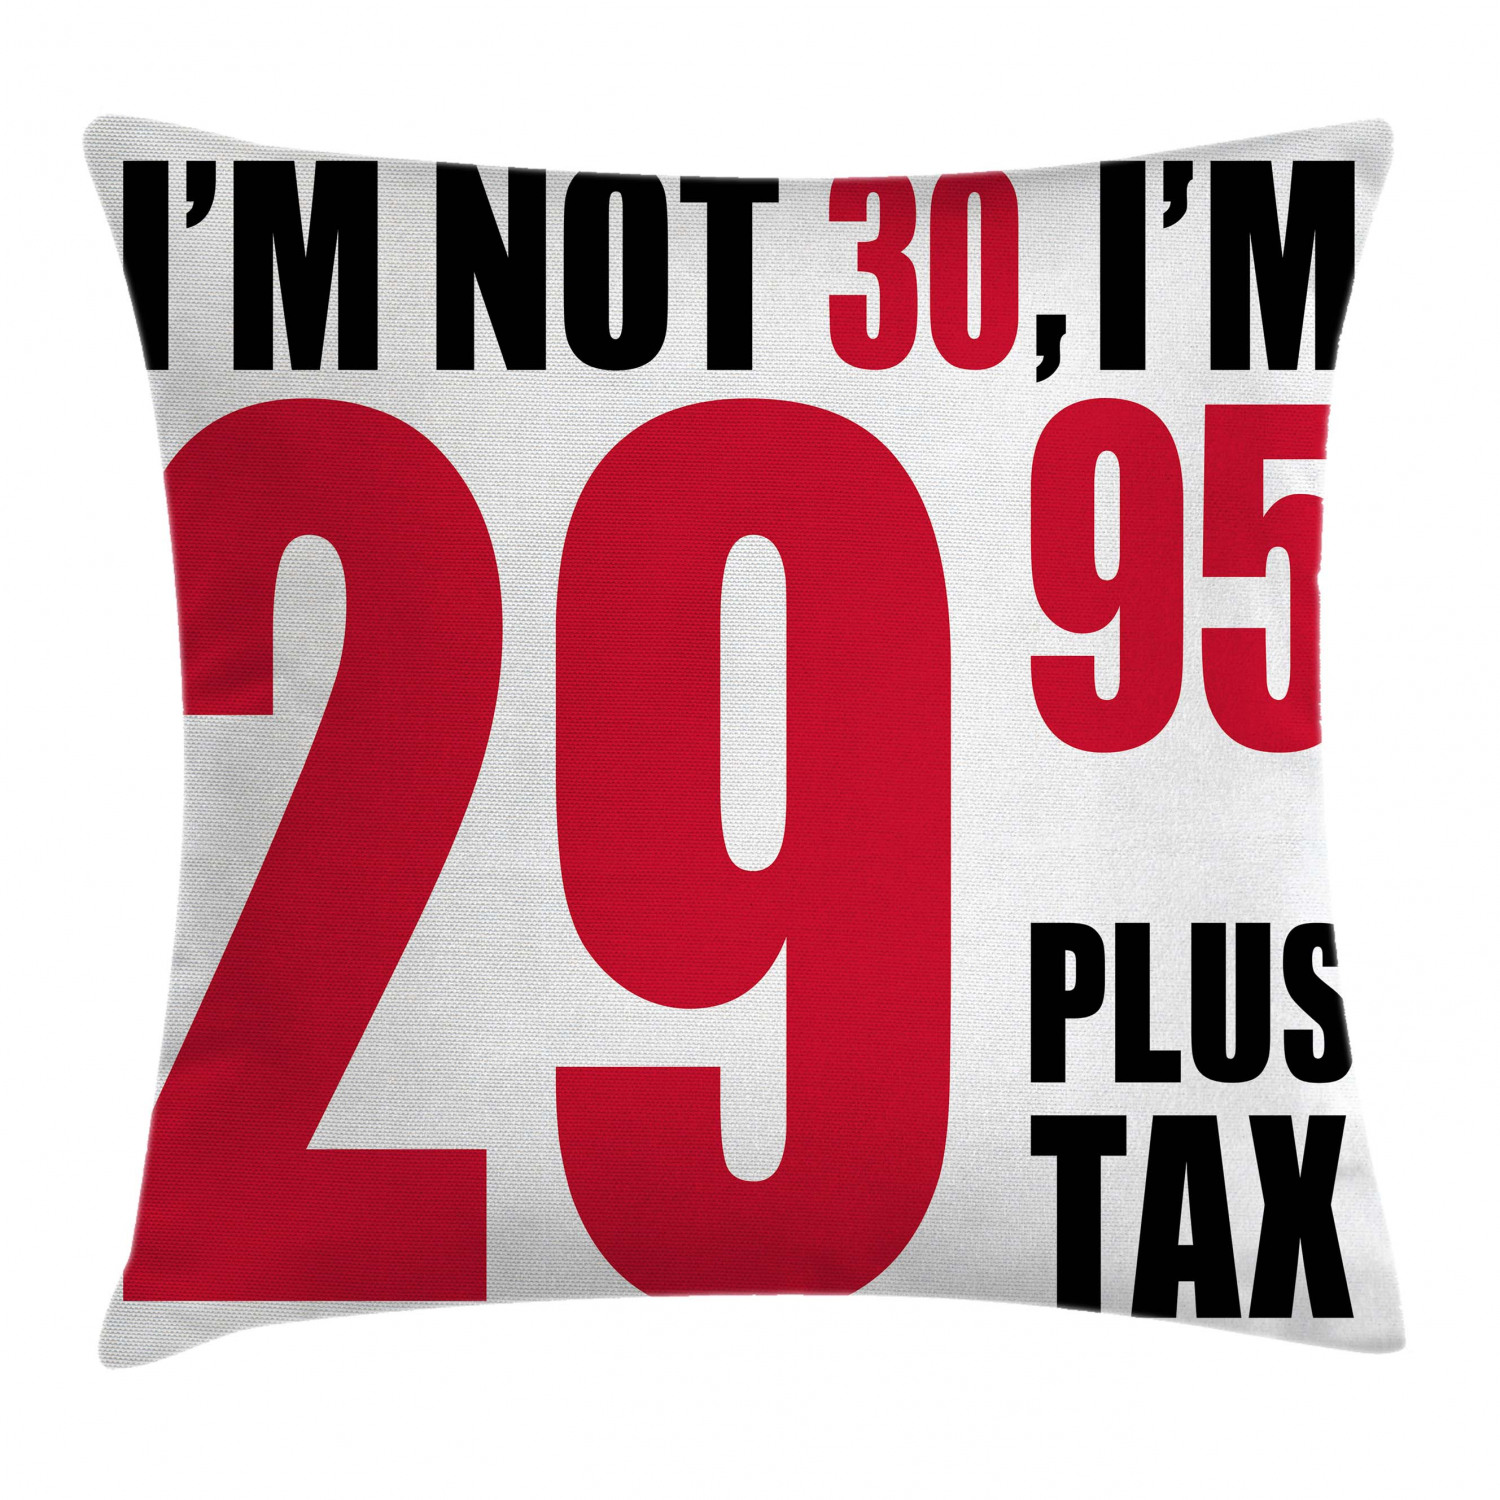 30th Birthday Decorations Throw Pillow Cushion Cover Forever Young Themed Funny Humorous Slogan Pictogram Style Decorative Square Accent Pillow Case 16 X 16 Inches Red Black White By Ambesonne Walmart Com Walmart Com